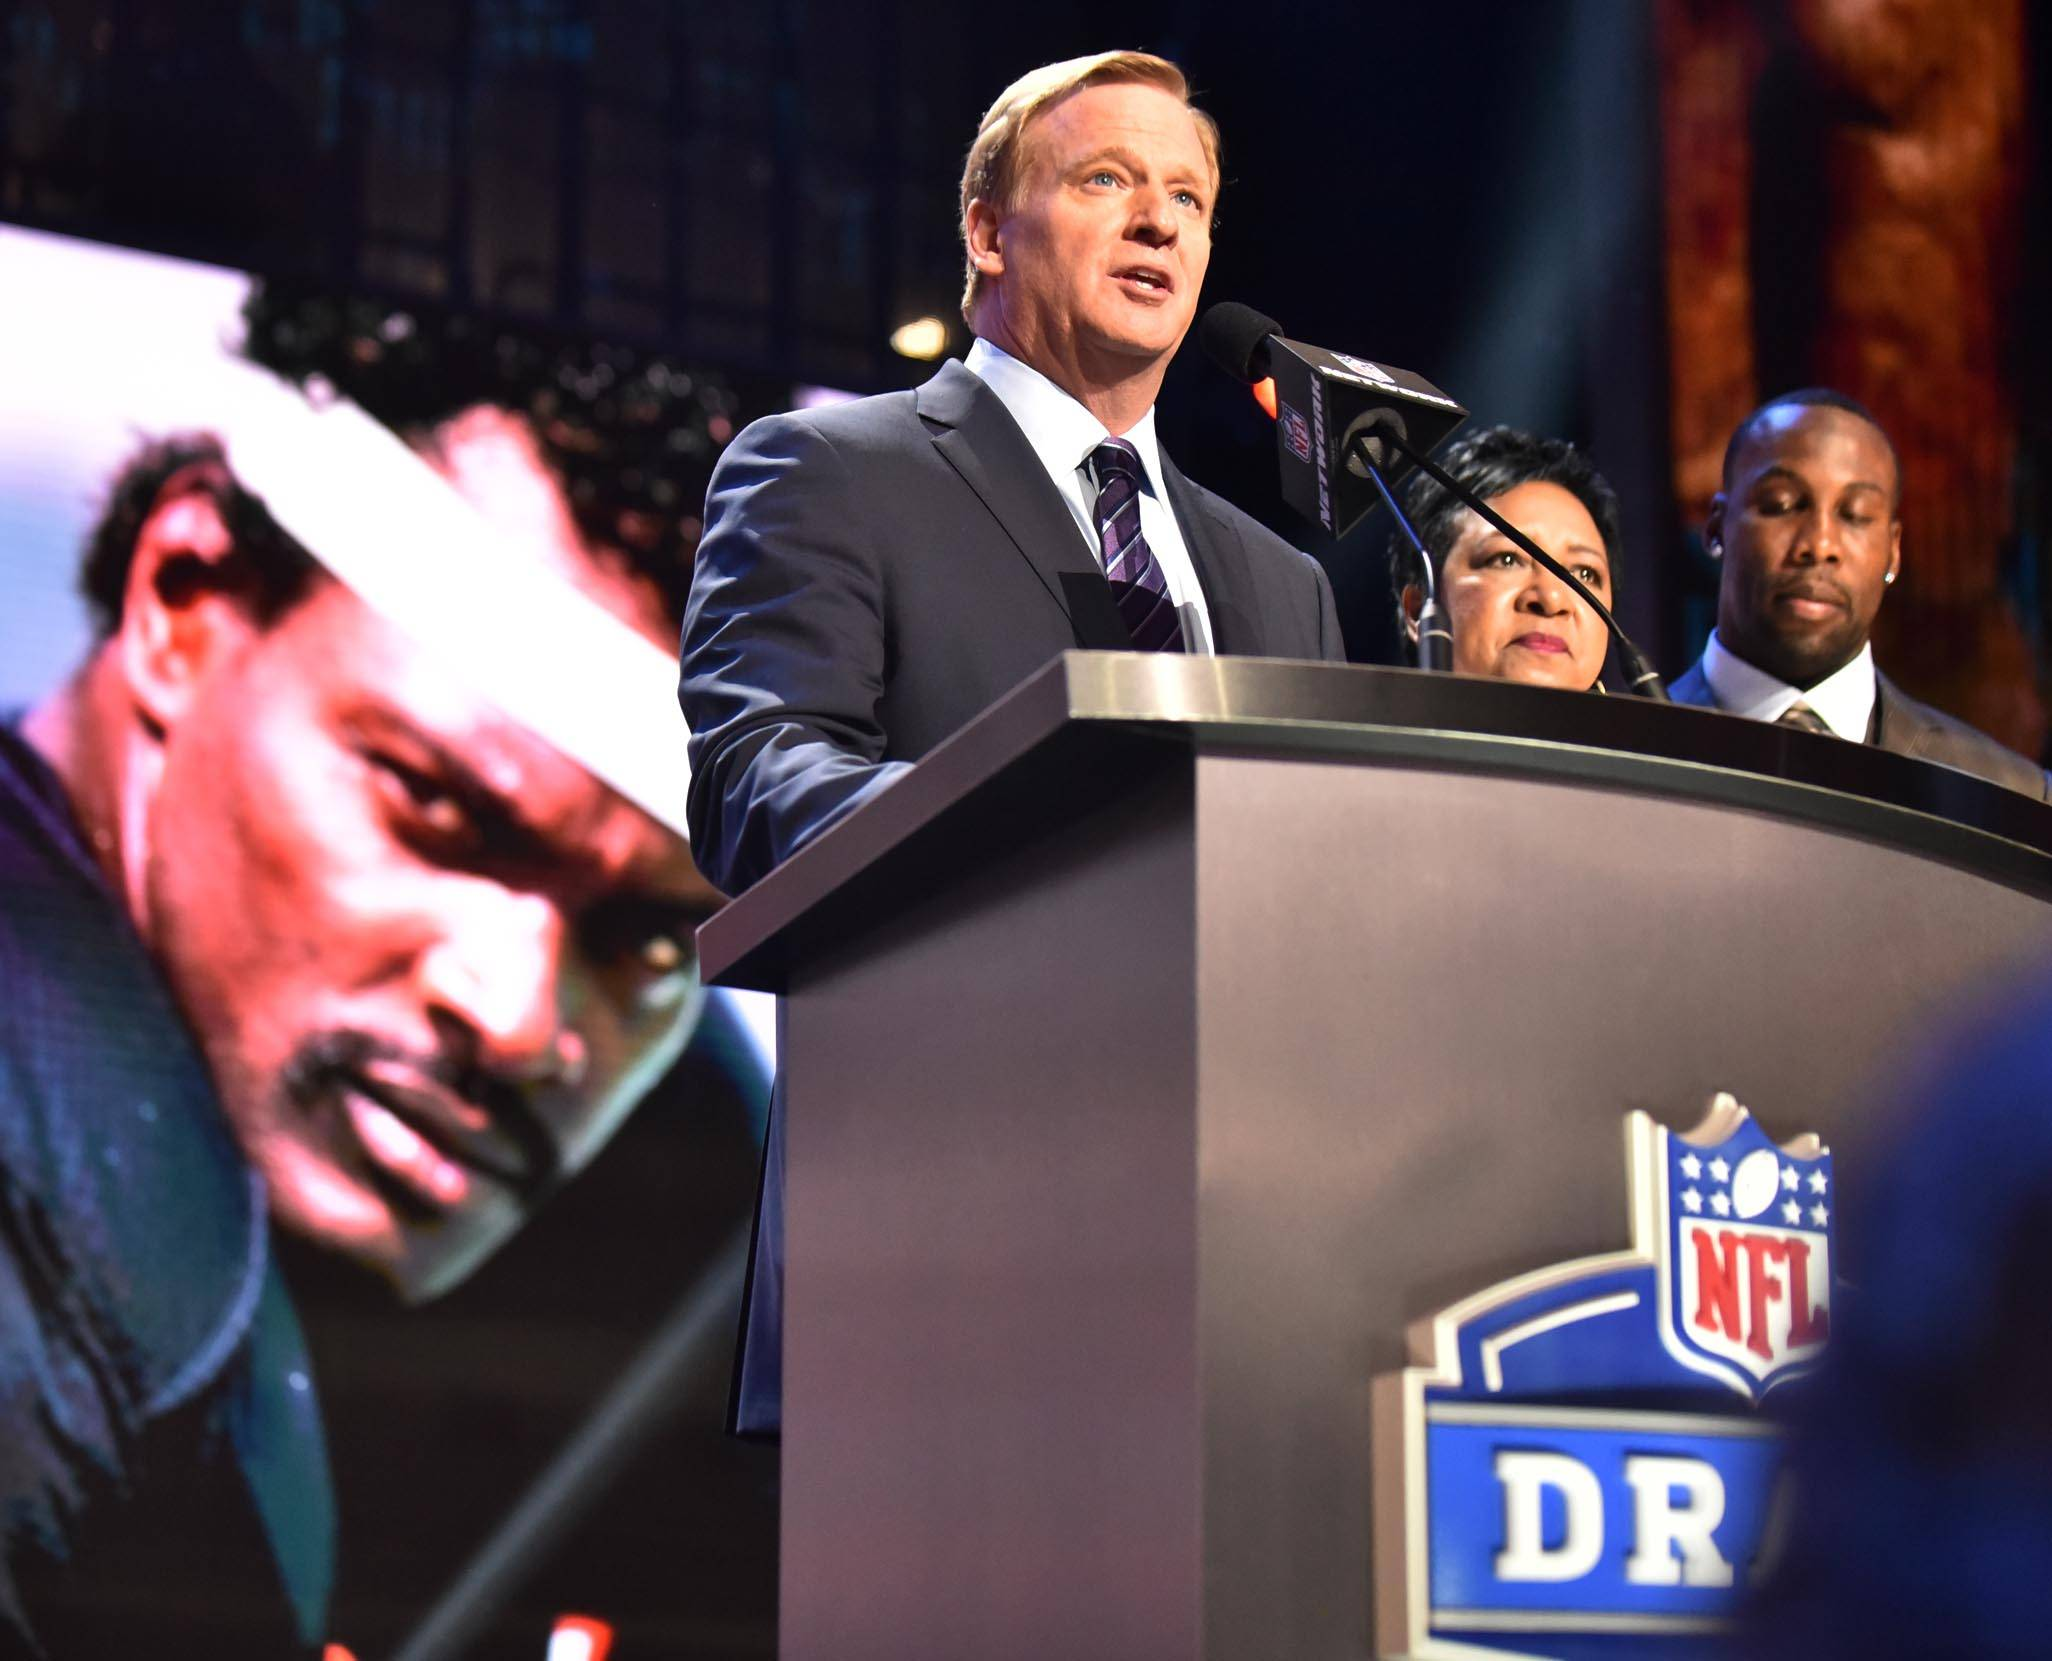 NFL Commissioner Roger Goodell and Connie Payton, wife of Chicago Bears legend Walter Payton, appear with Walter Payton Award winner Anquan Bodin Thursday at the 2016 NFL draft.